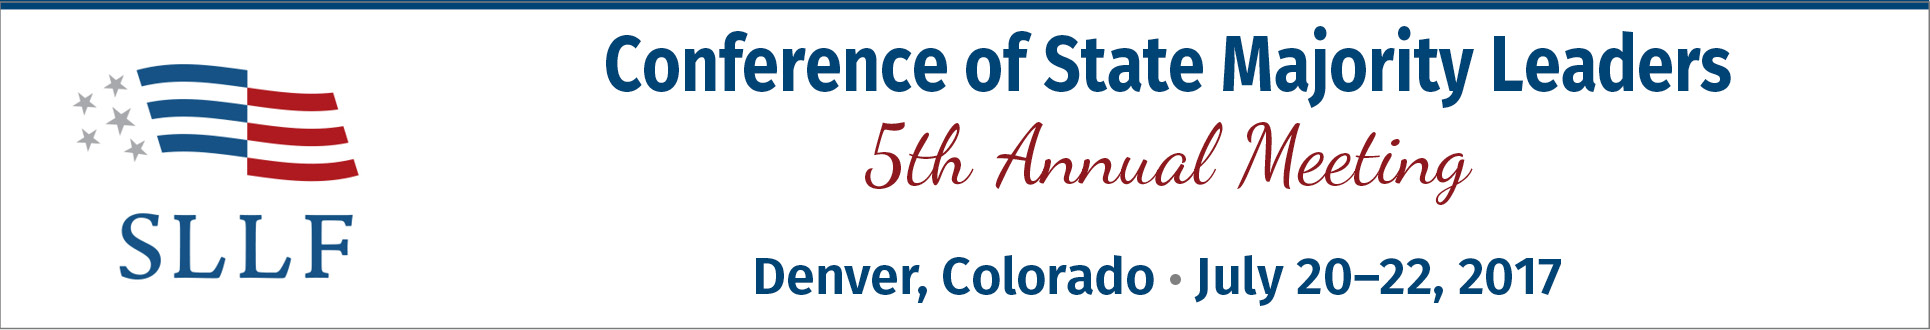 2017 Conference of State Majority Leaders